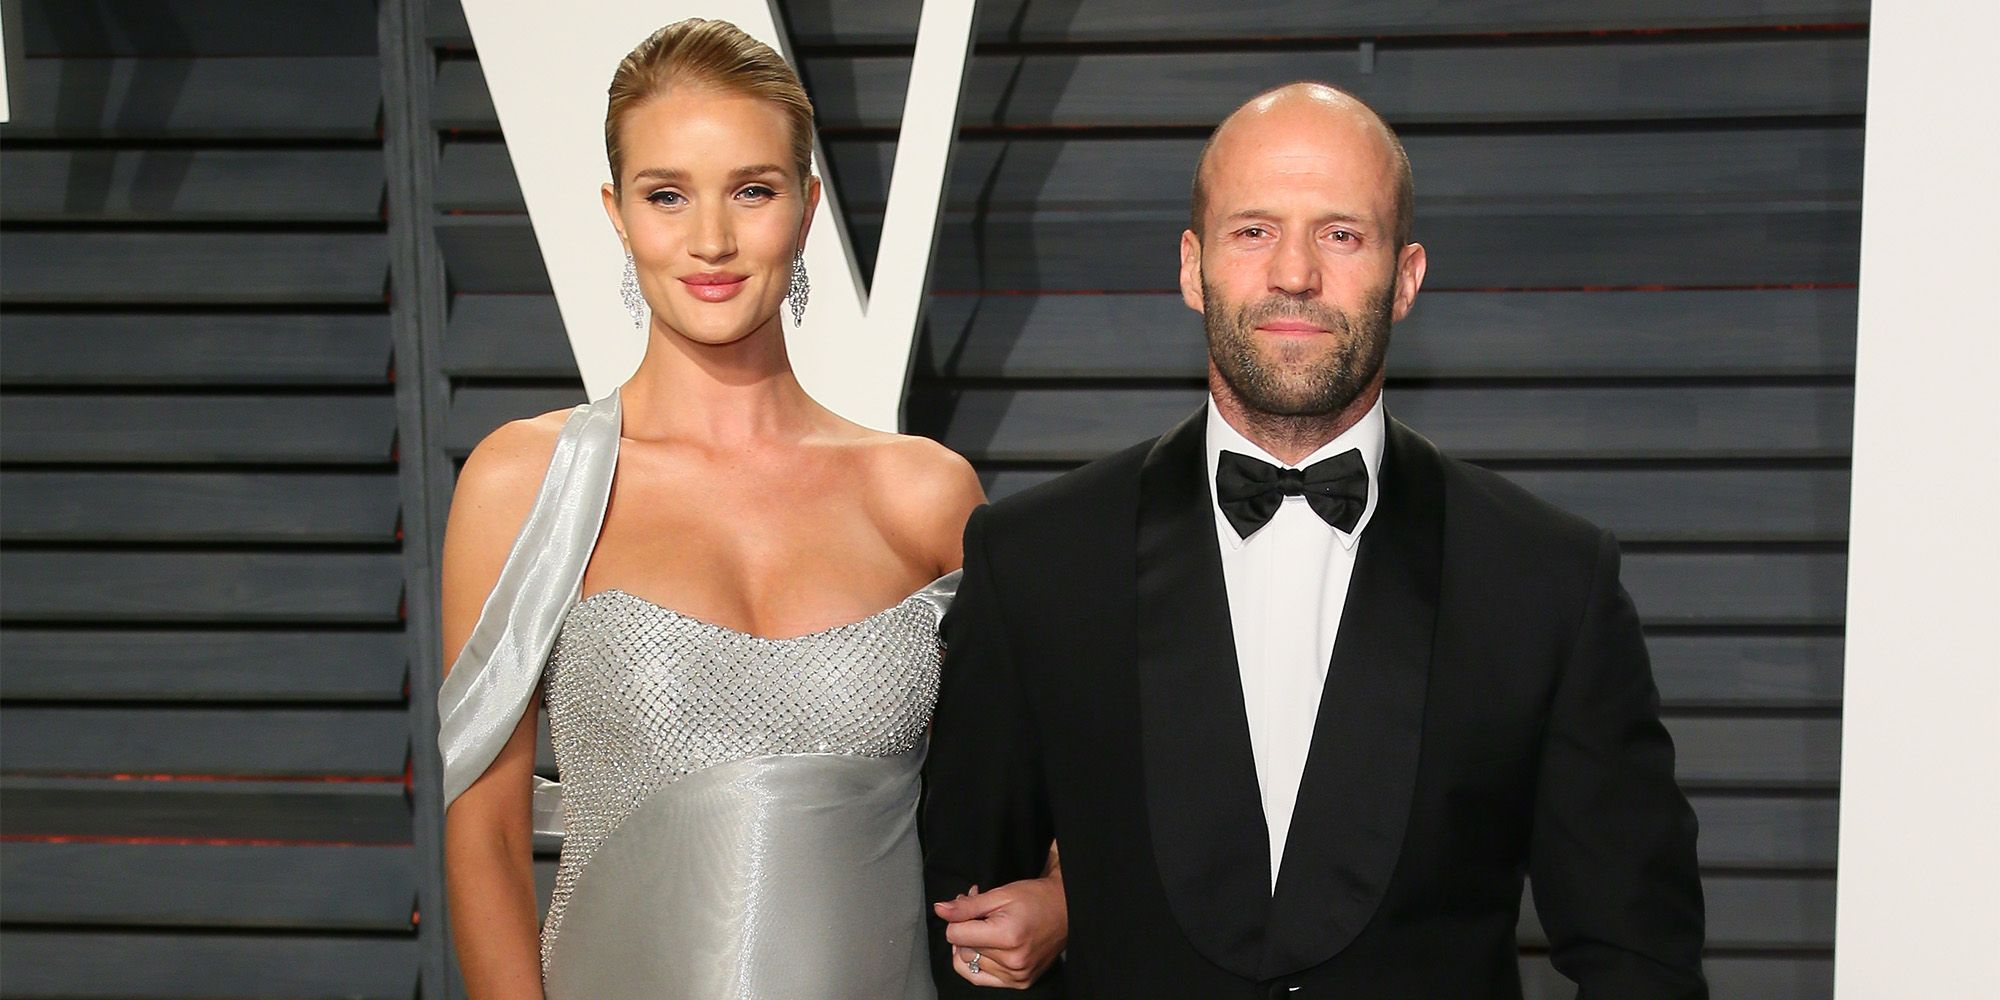 Rosie Huntington-Whiteley Has Welcomed a Baby Boy